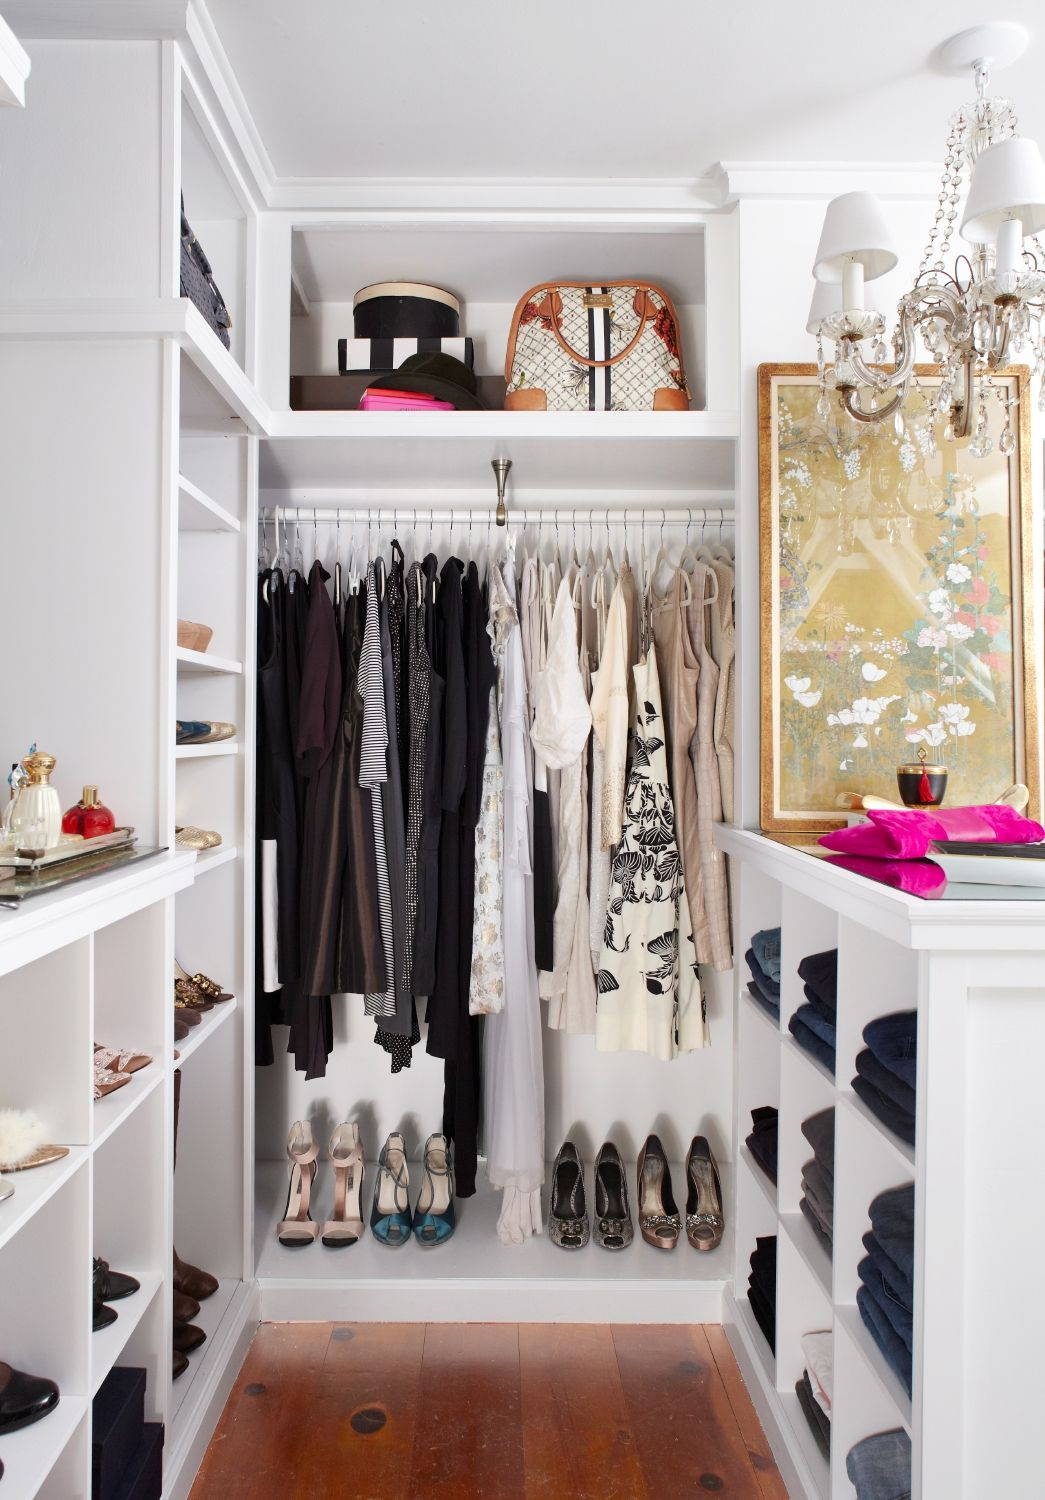 12 small walk in closet ideas and organizer designs Small closet shelving ideas